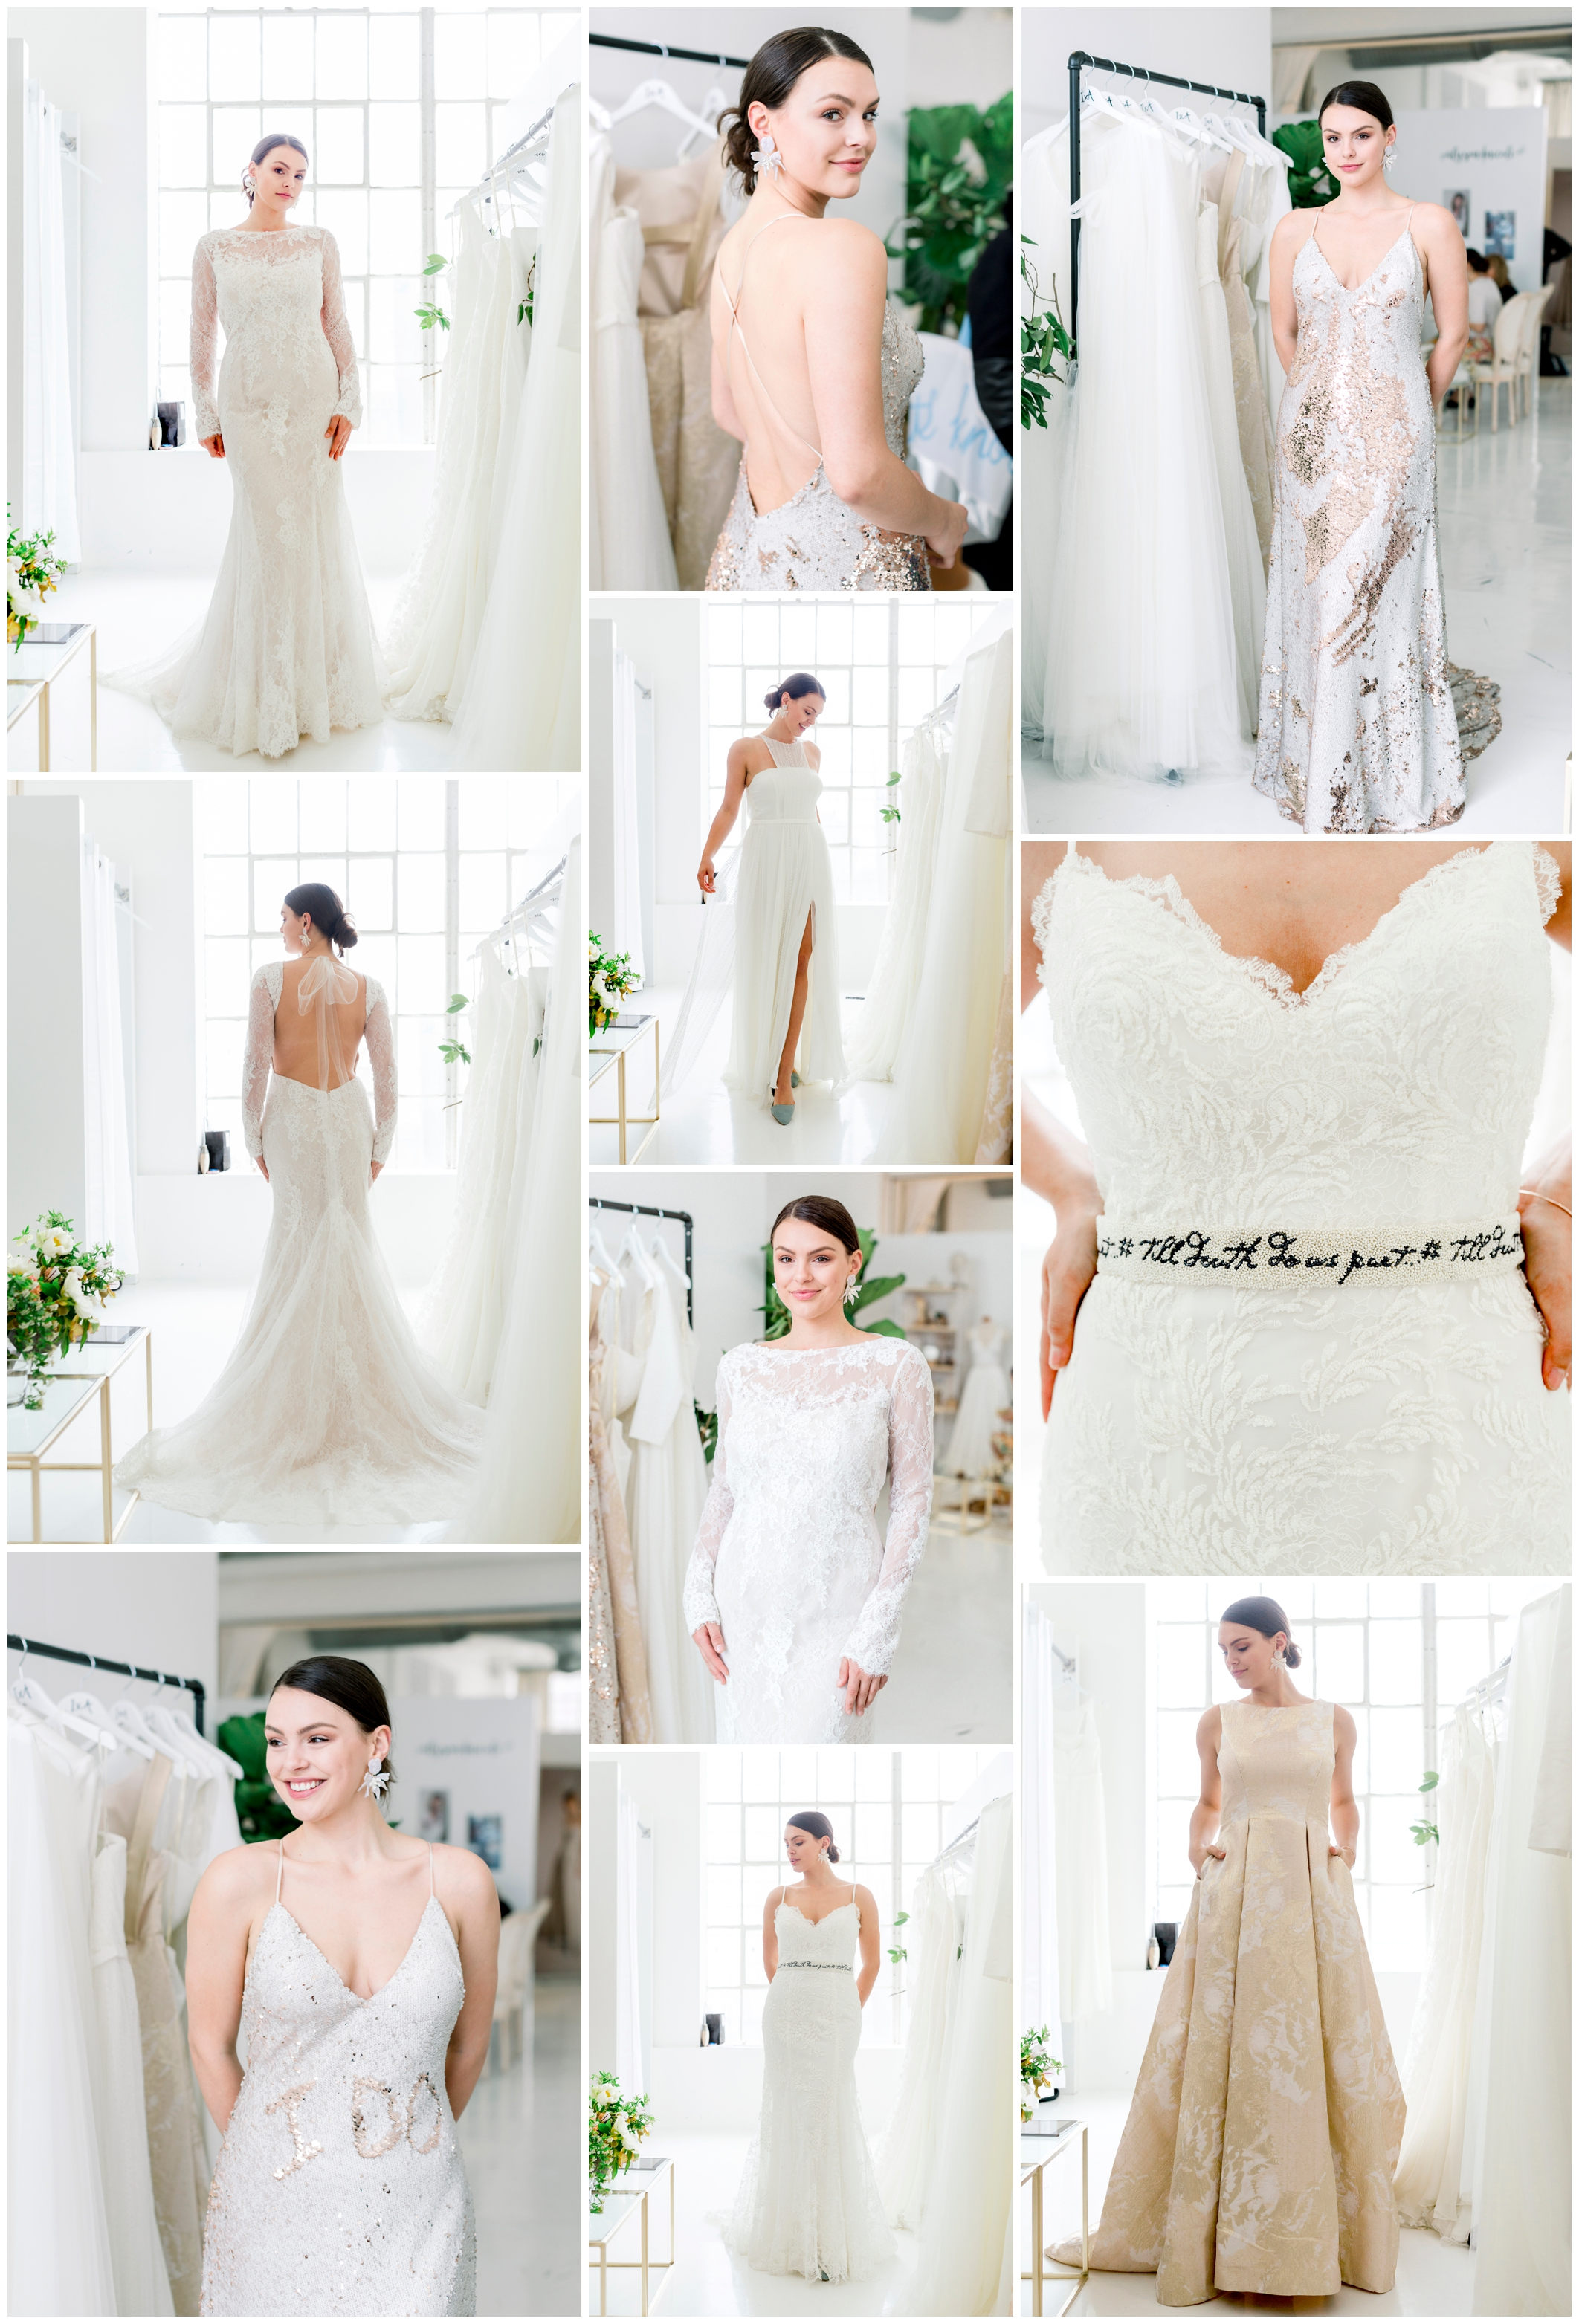 Ivy & Aster at One Fine Day Bridal Market